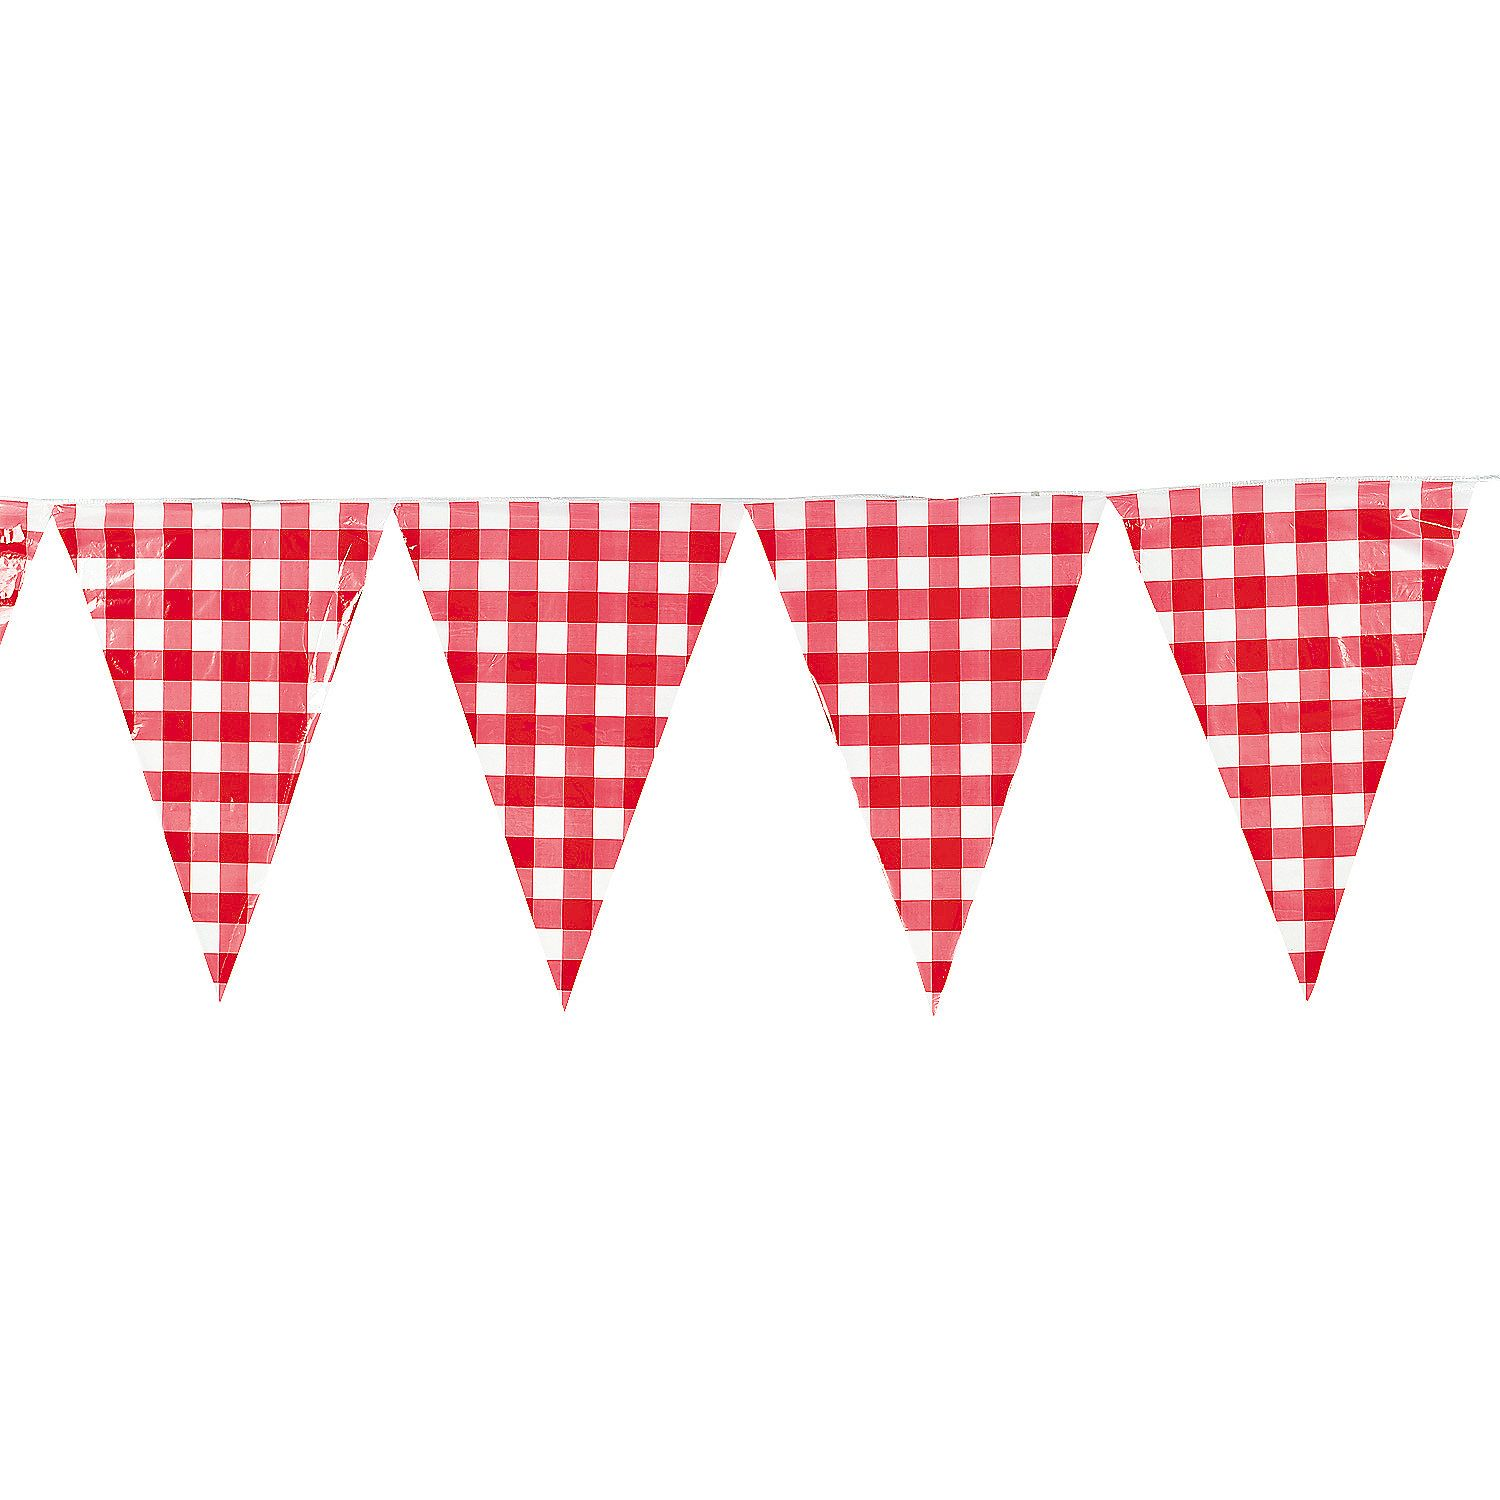 LET/'S PARTY BIRTHDAY//BBQ//PICNIC ANY THEME PARTY BANNER BLACK//RED// WHITE 6 FT NEW